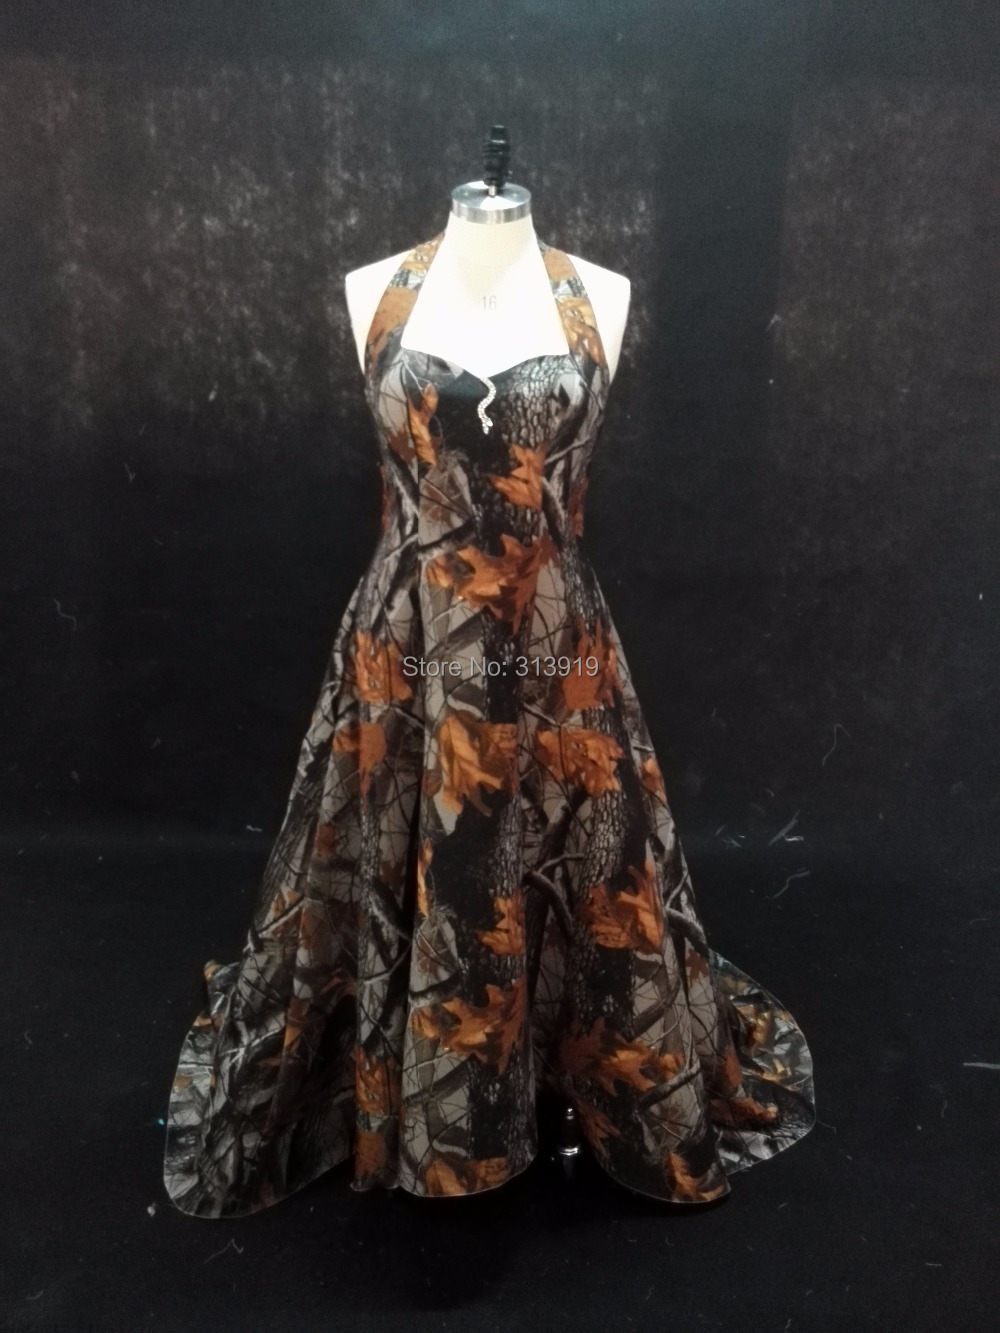 Free Shipping 2017 New Style Mossy Oak Halter Camo Wedding Dresses  Camouflage Dresses Custom Make Plus Sizes In Wedding Dresses From Weddings  U0026 Events On ...